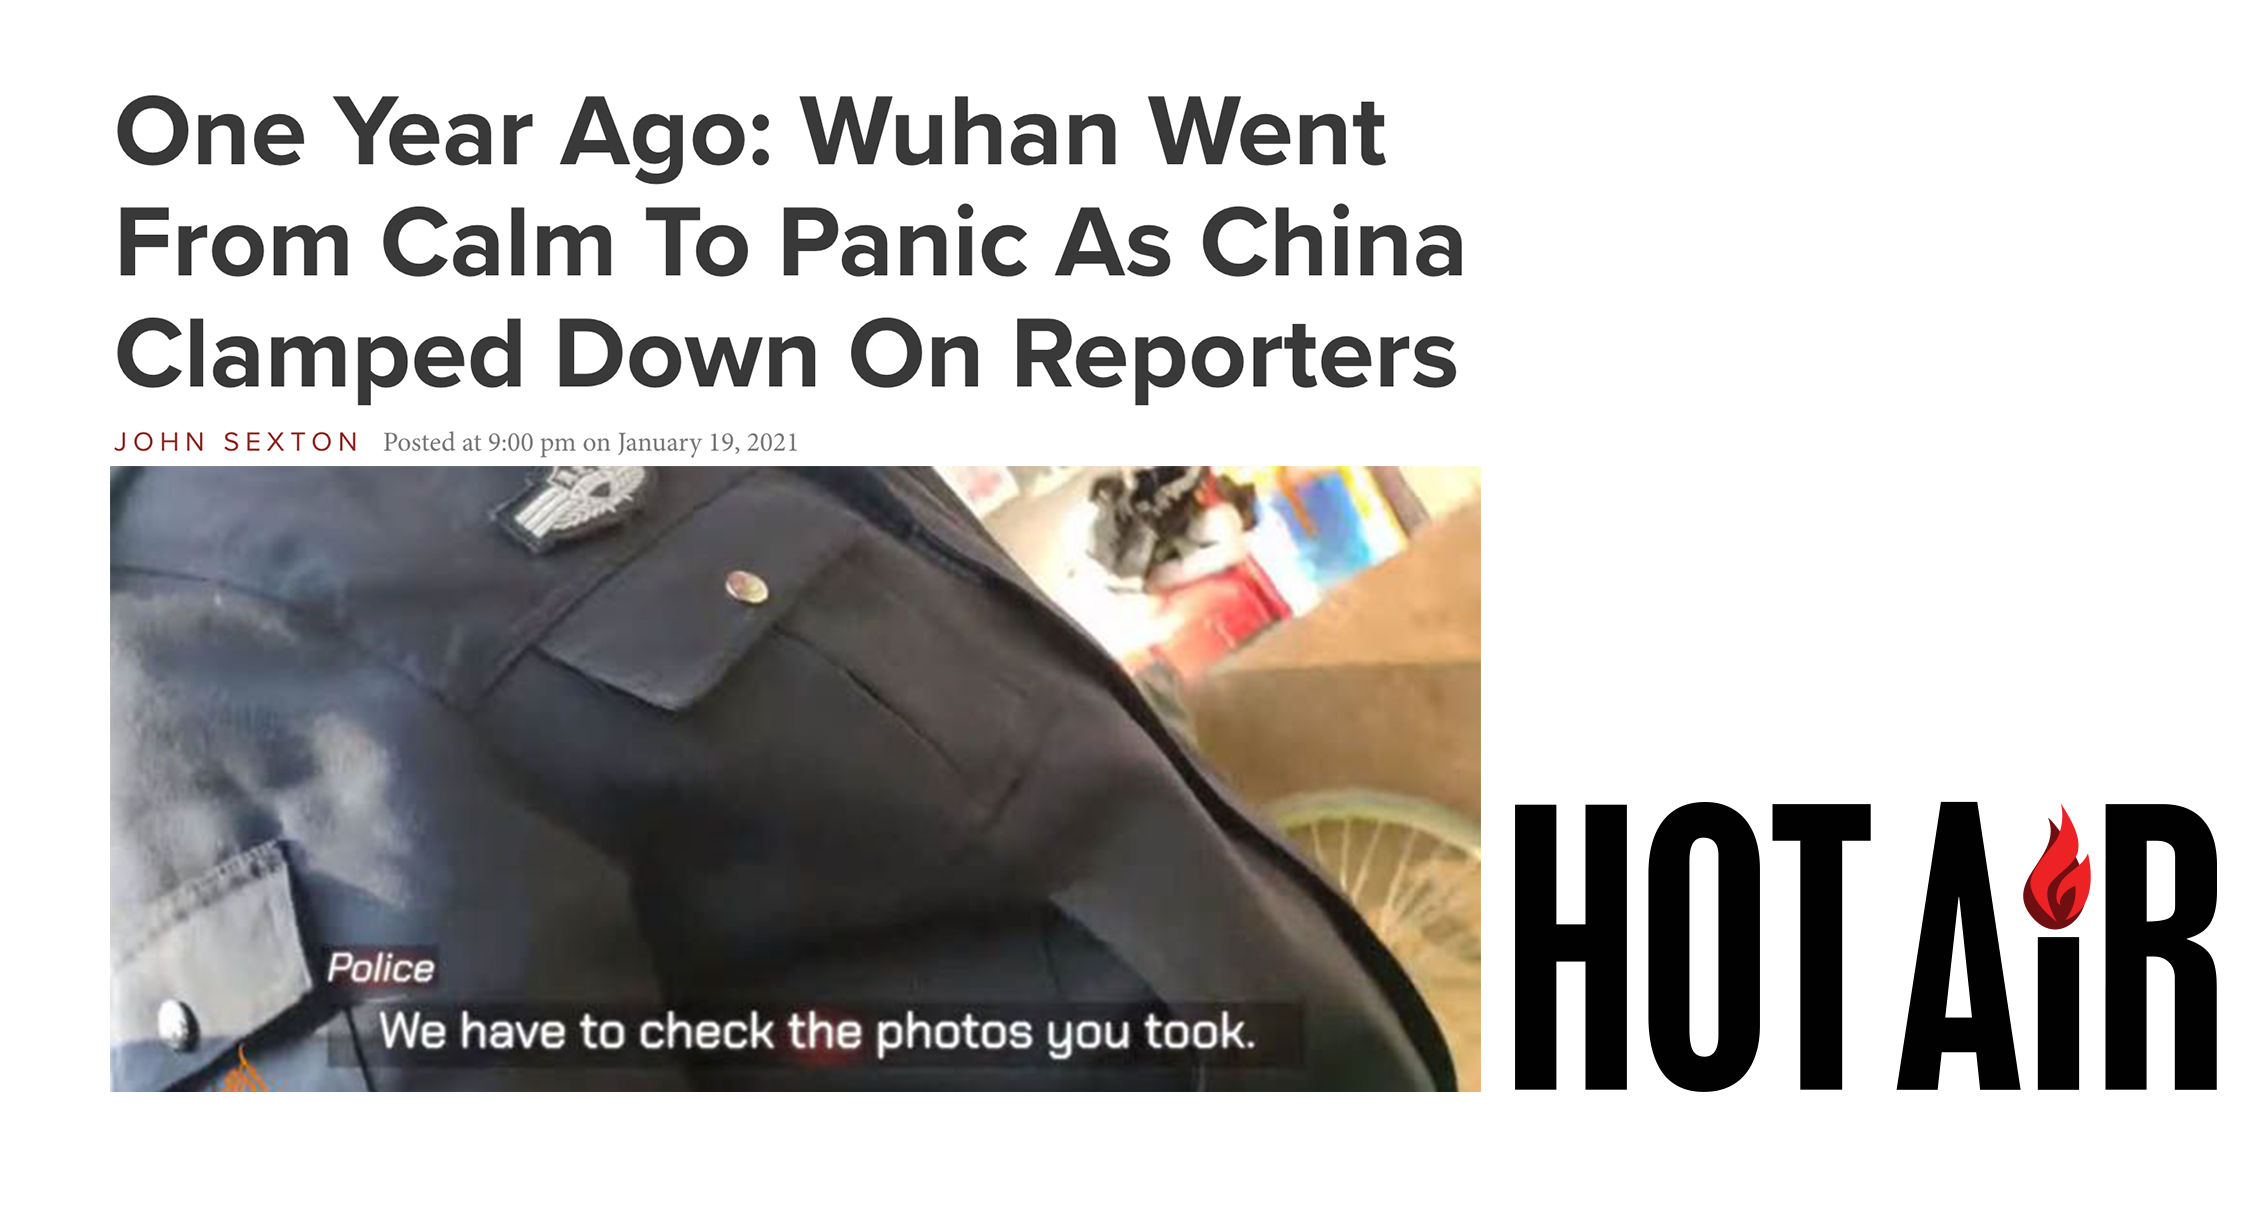 One Year Ago: Wuhan Went From Calm To Panic As China Clamped Down On Reporters